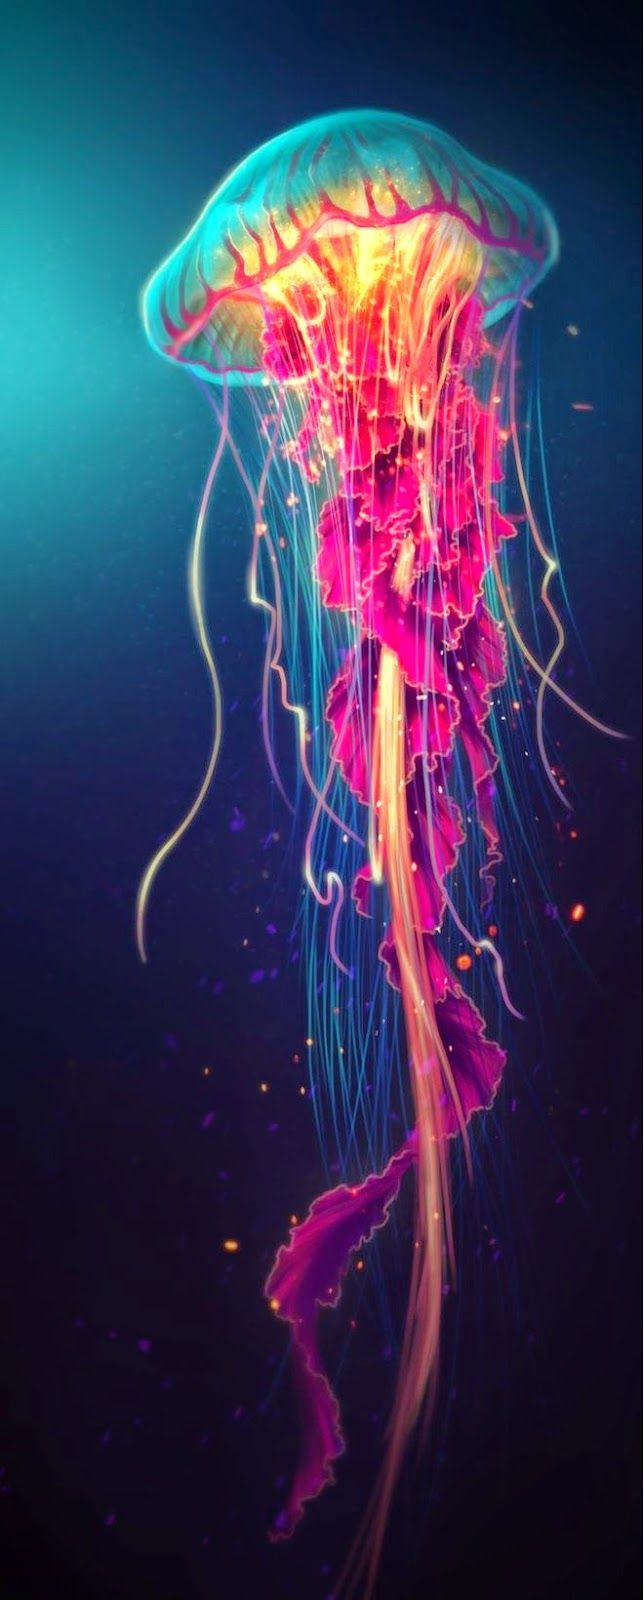 ⭐Amazing Jellyfish!⭐